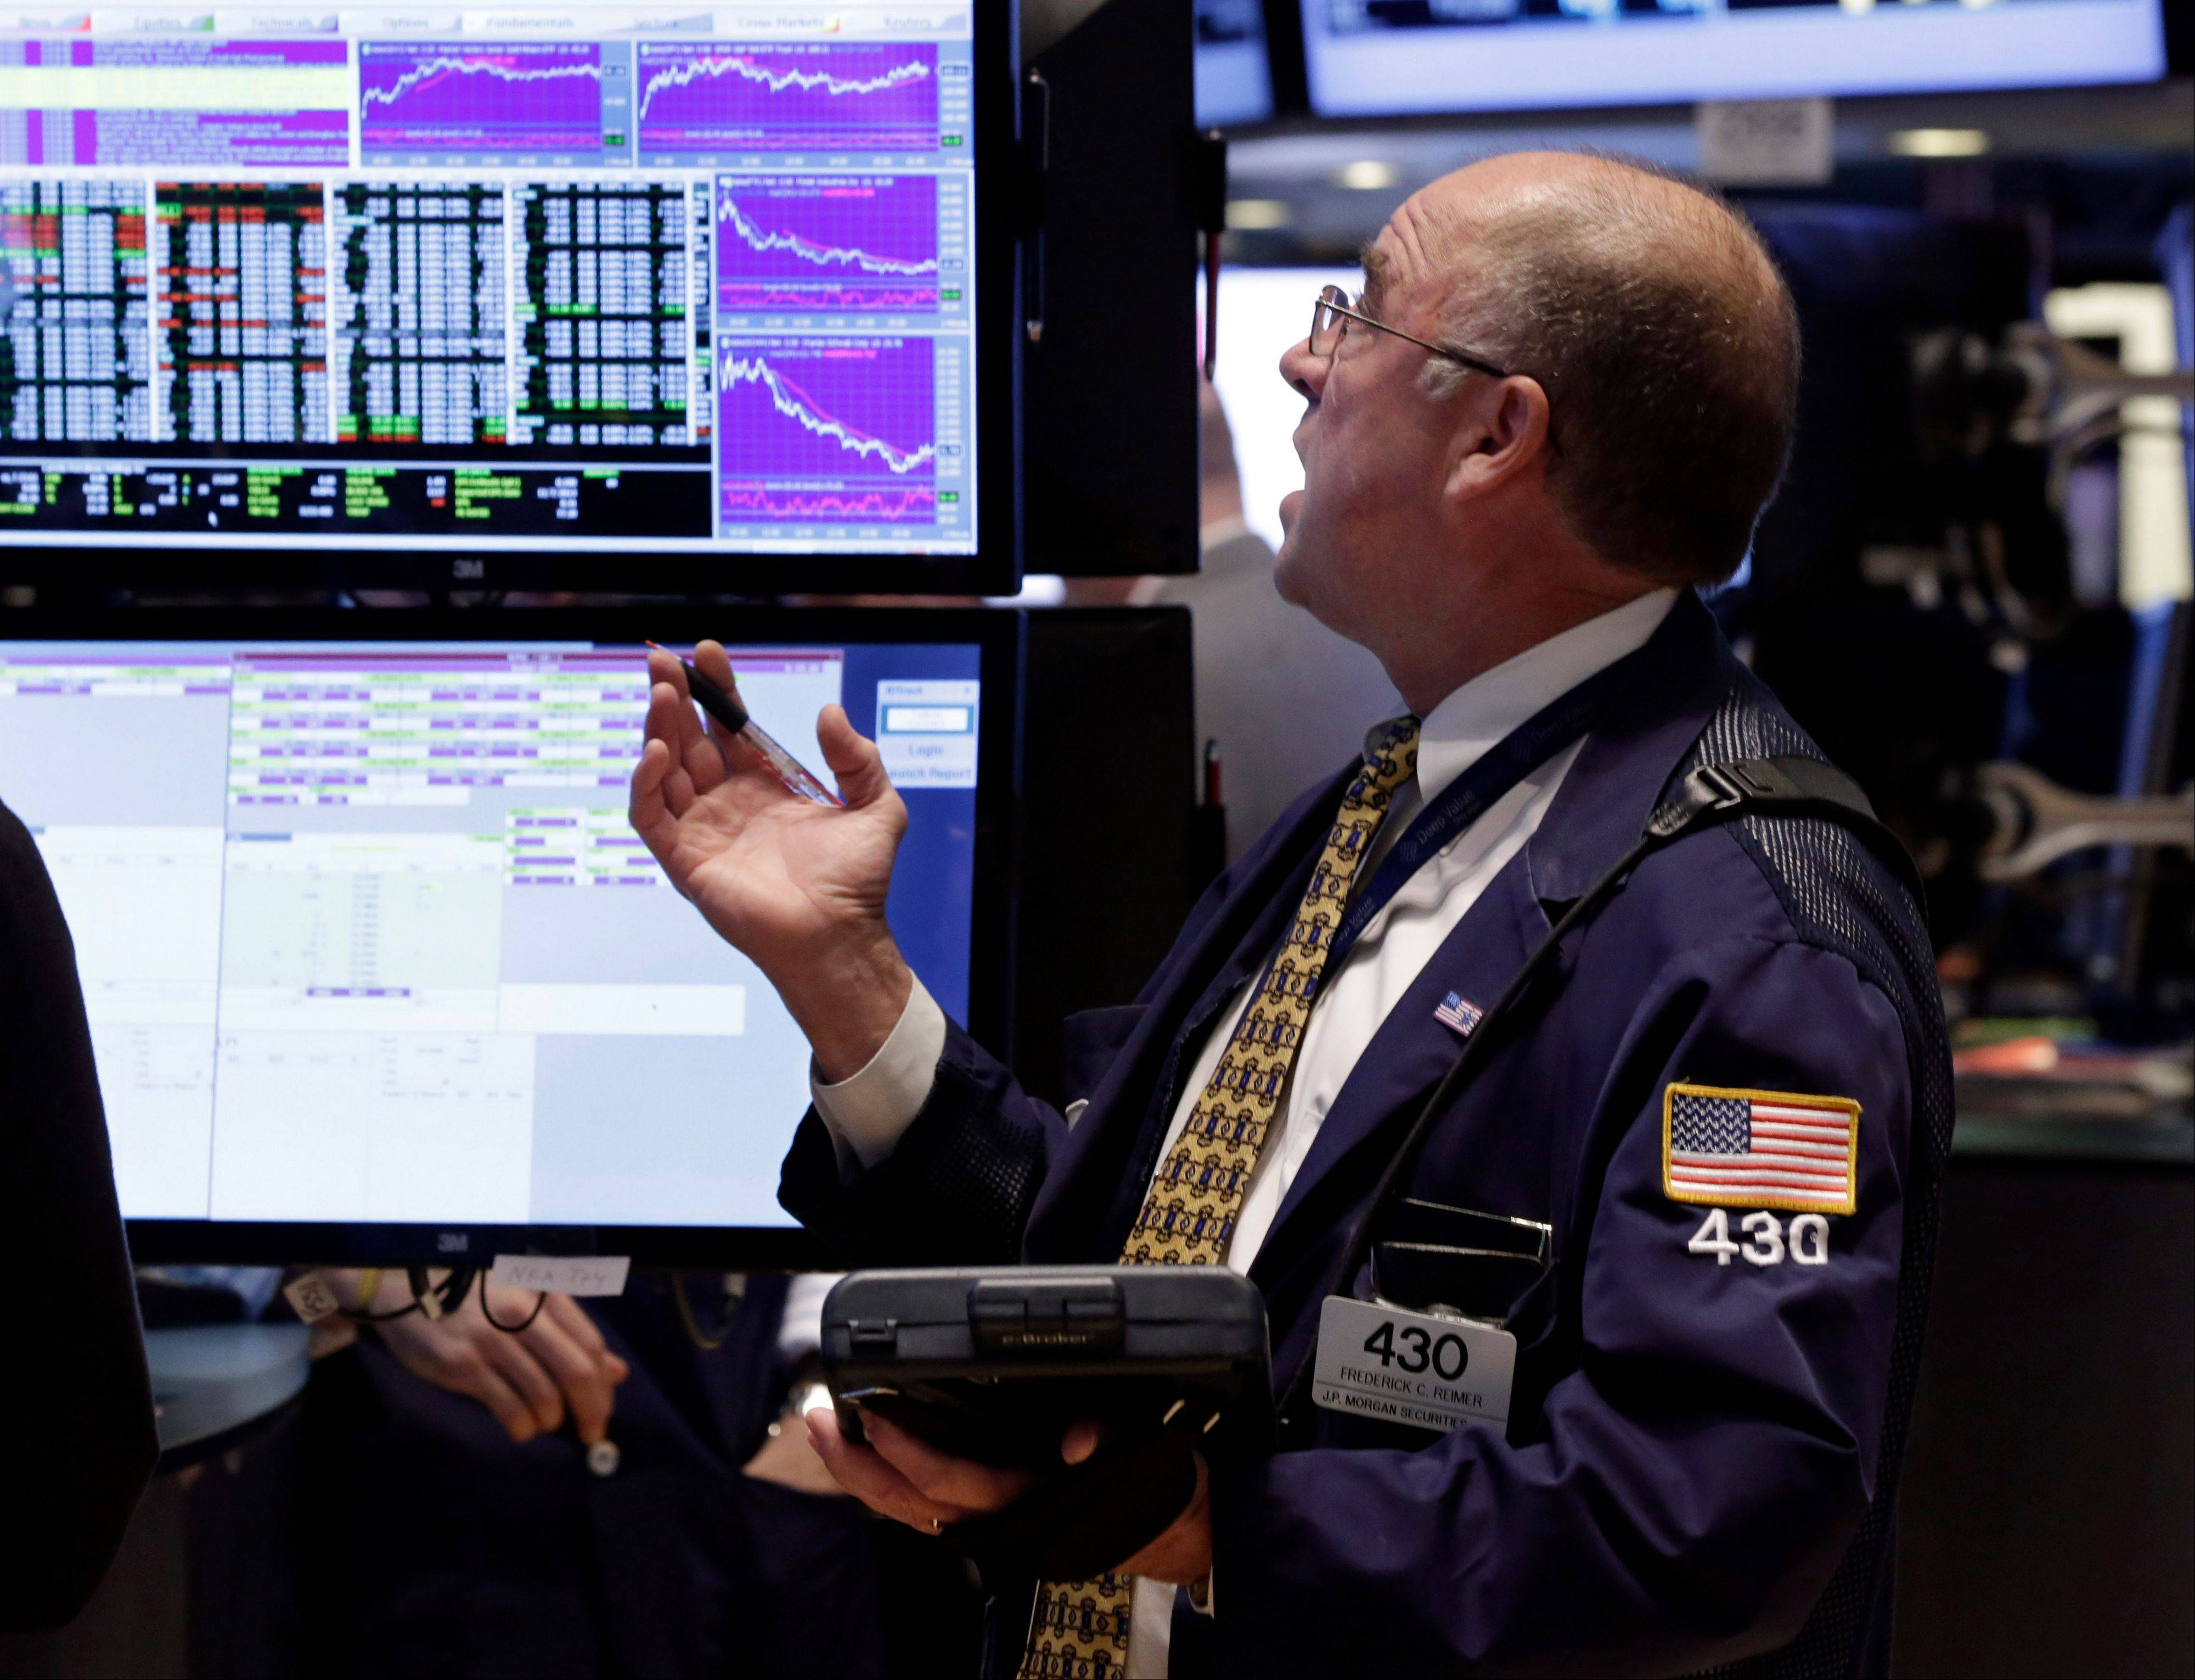 U.S. stocks rose, with the Standard & Poor�s 500 Index trimming morning losses for a ninth consecutive day, as data on retail sales reinforced signals the economy is expanding moderately.